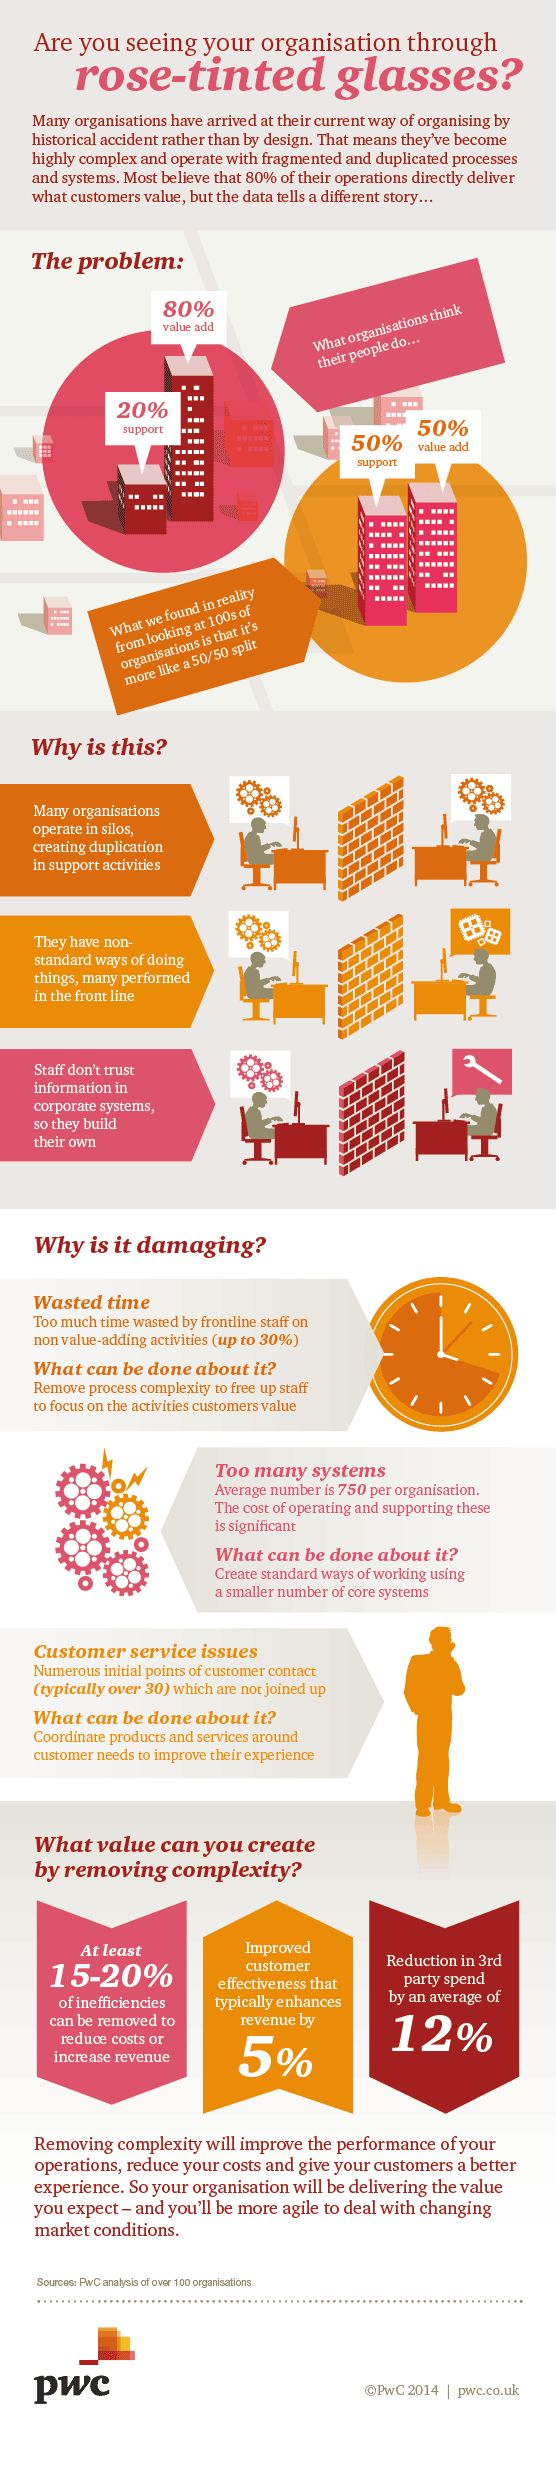 Making the most of your business: removing complexity - infographic